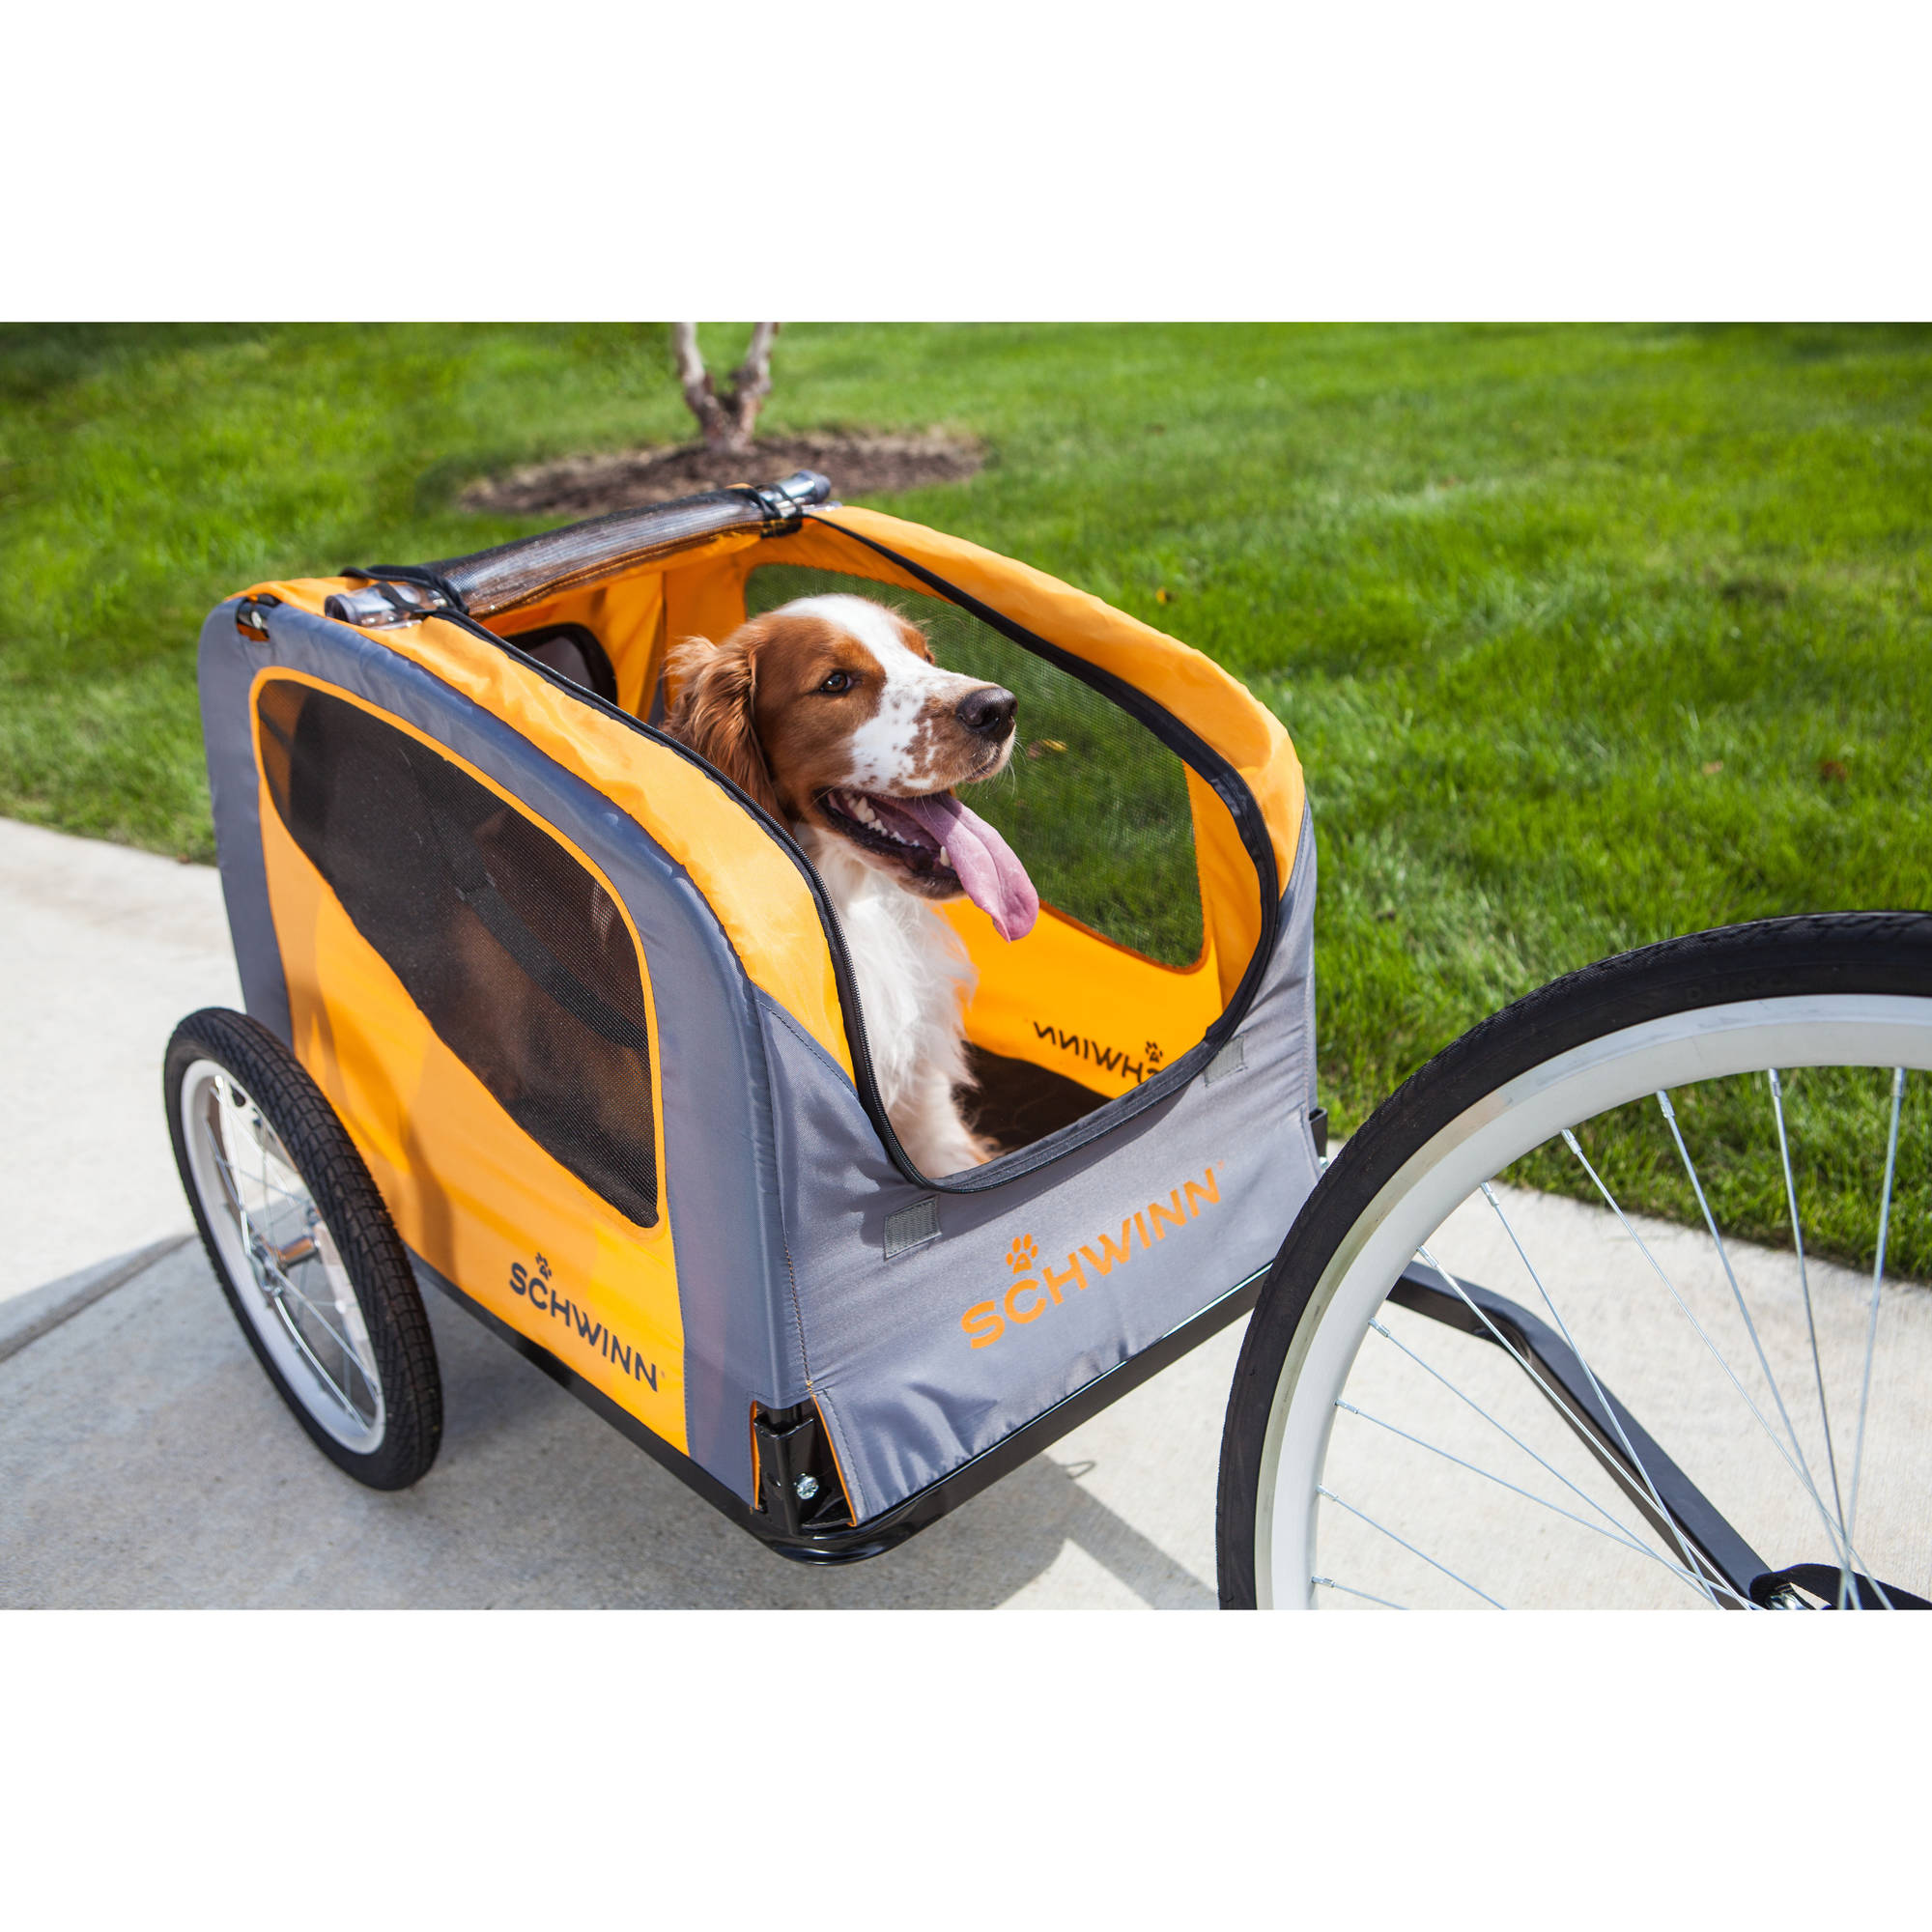 Schwinn Pet Trailer, Orange